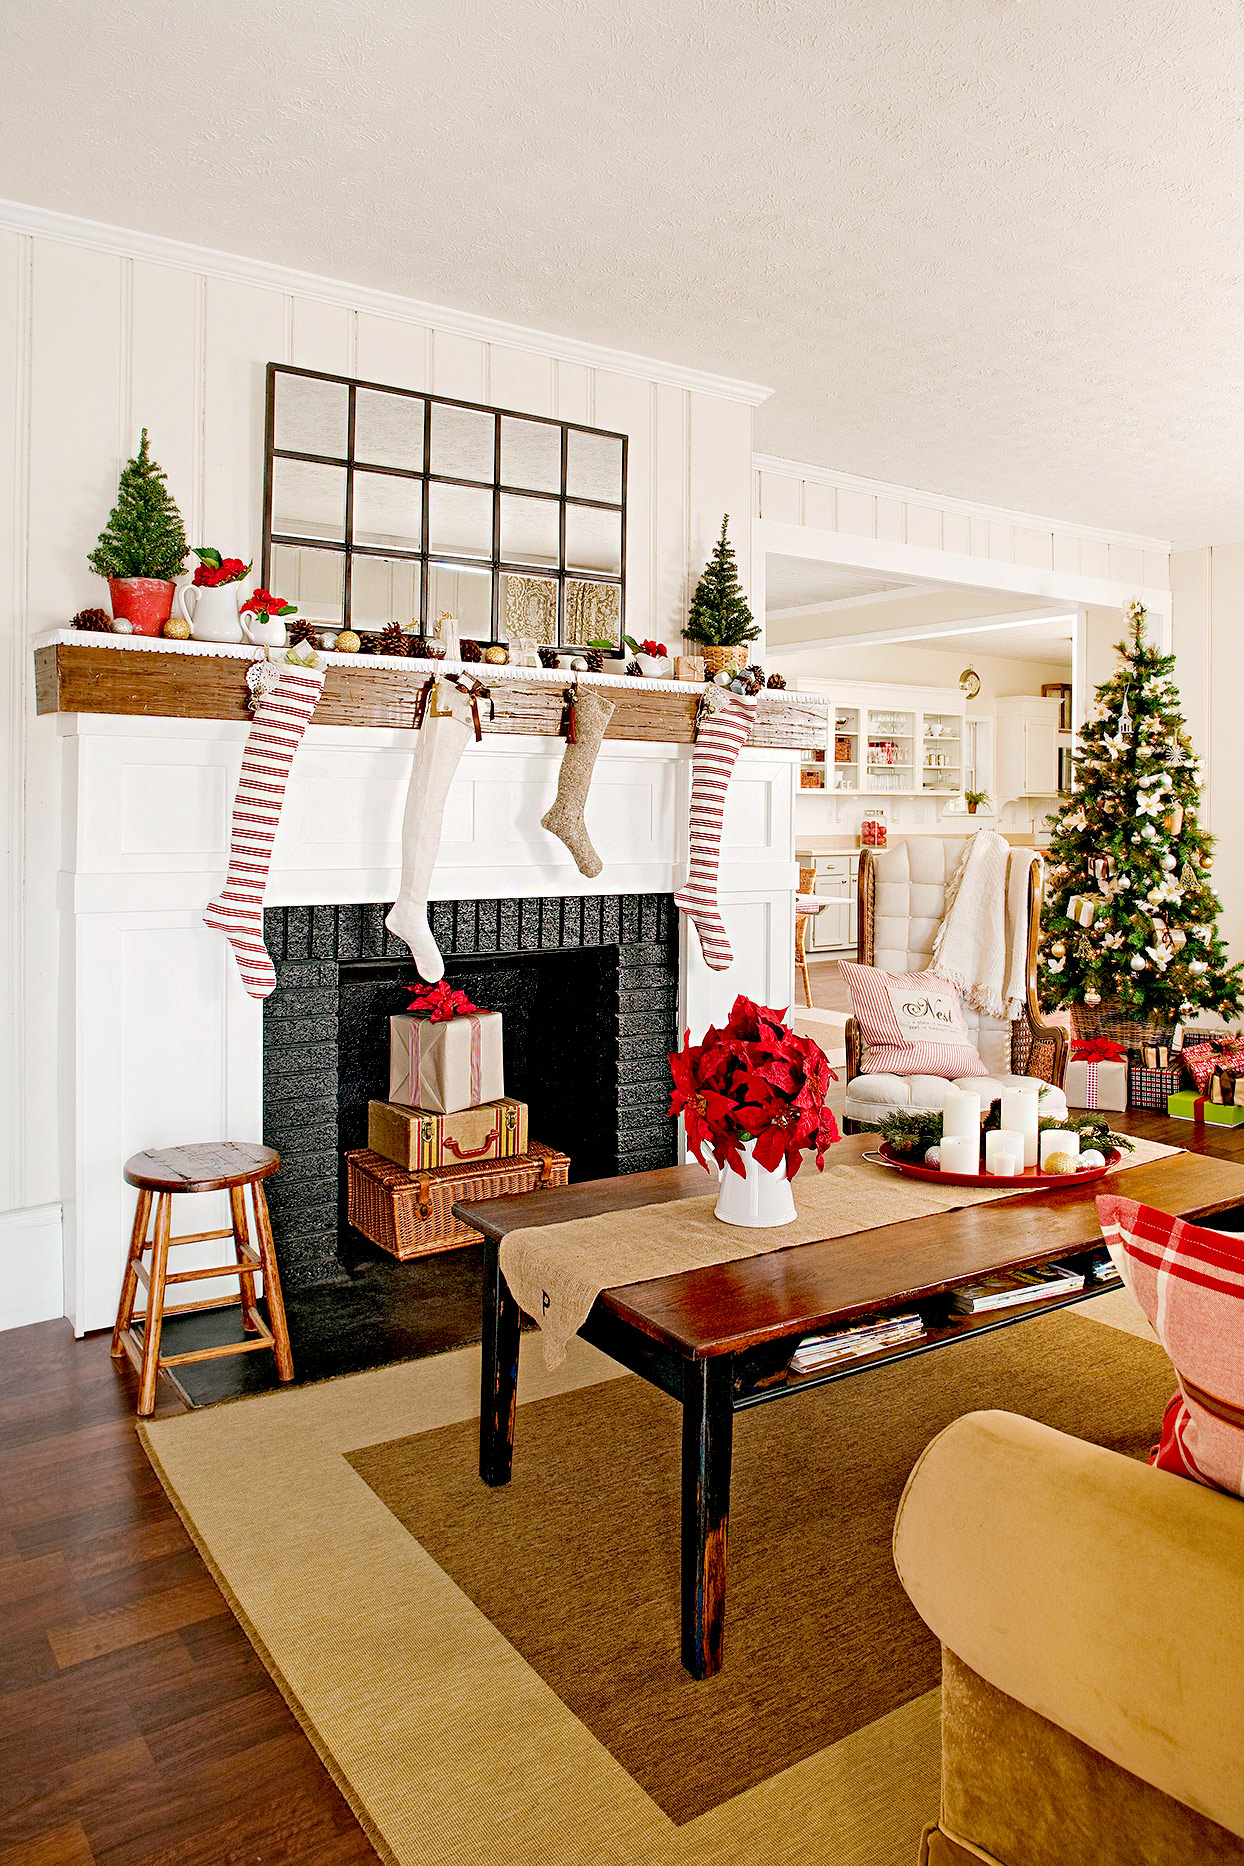 Living room with gifts in fireplace and stockings